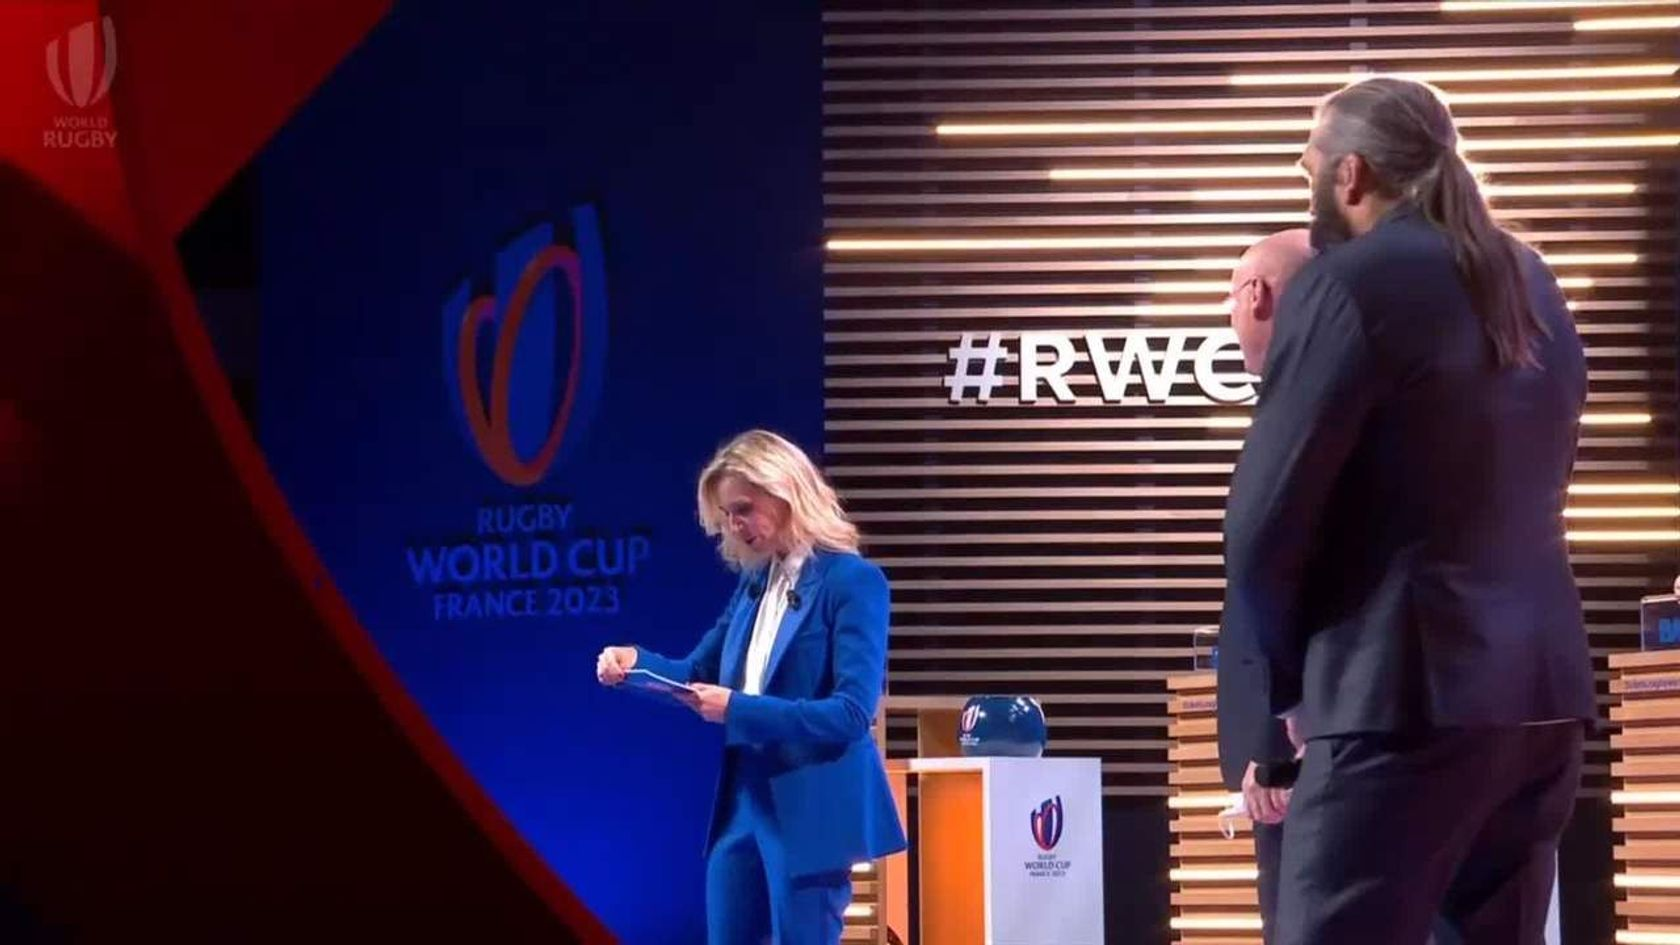 Watch The Rugby World Cup 2023 Live